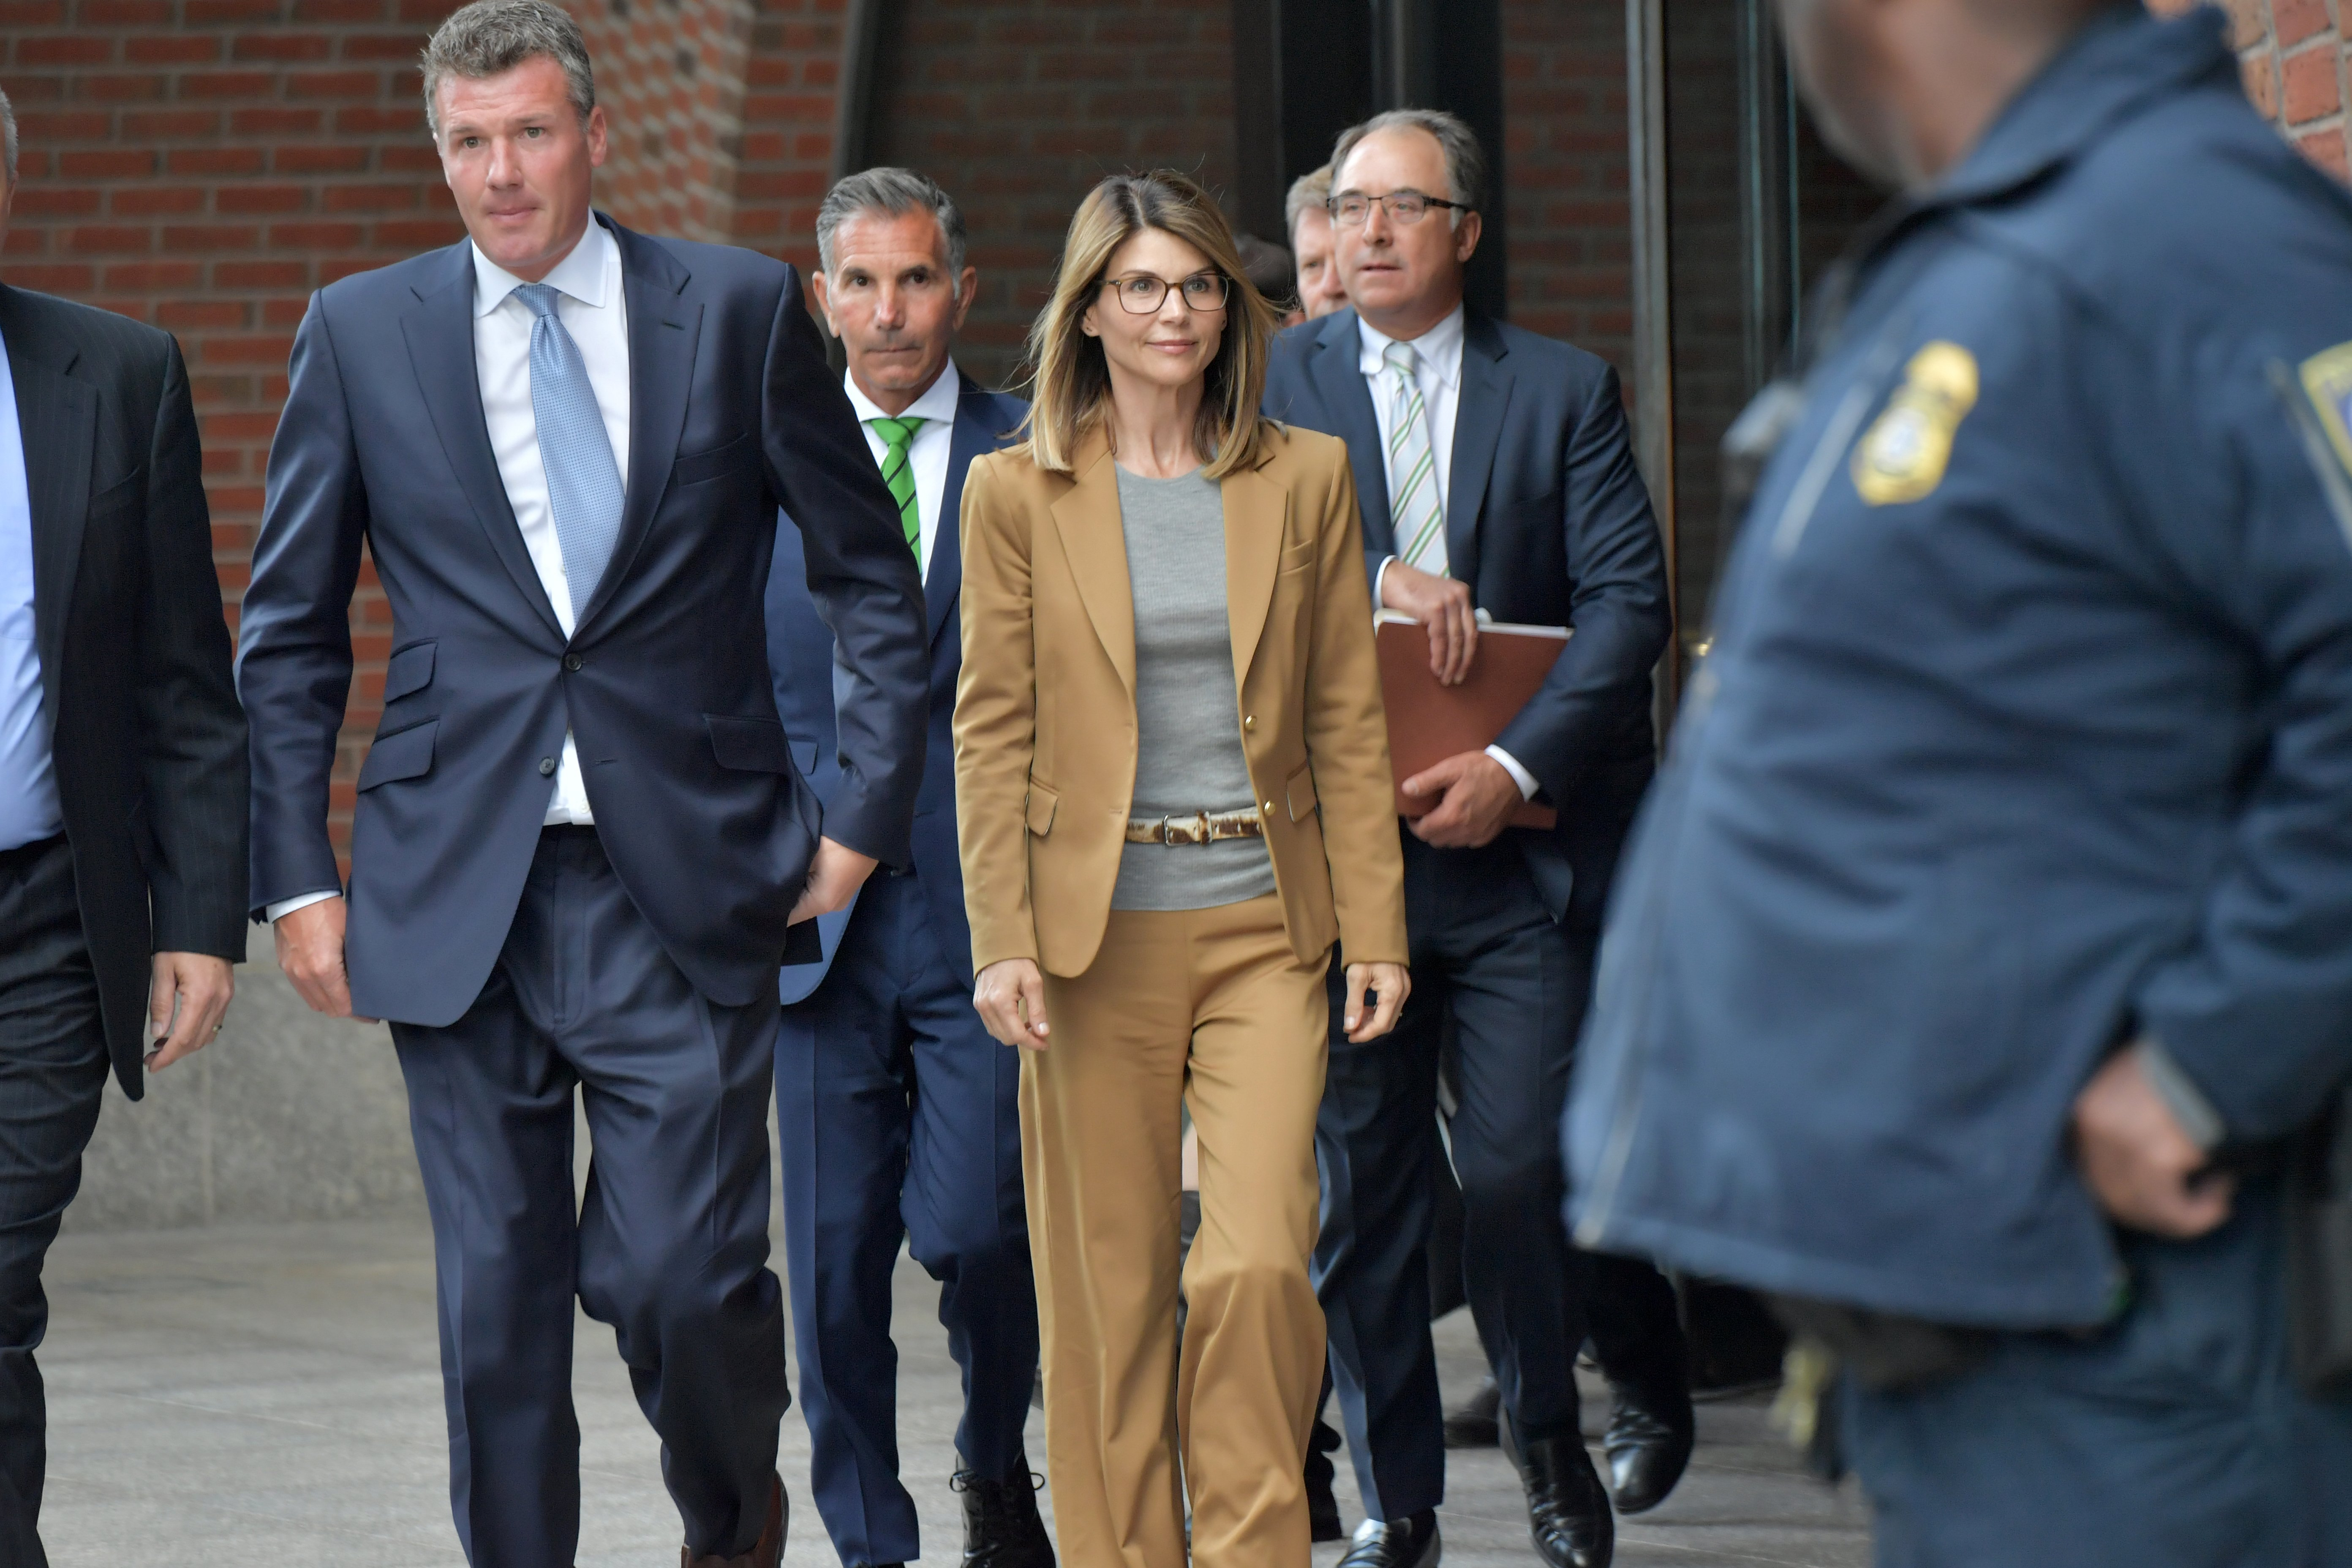 Lori Loughlin and Mossimo Giannulli during court hearing | Photo: Getty Images